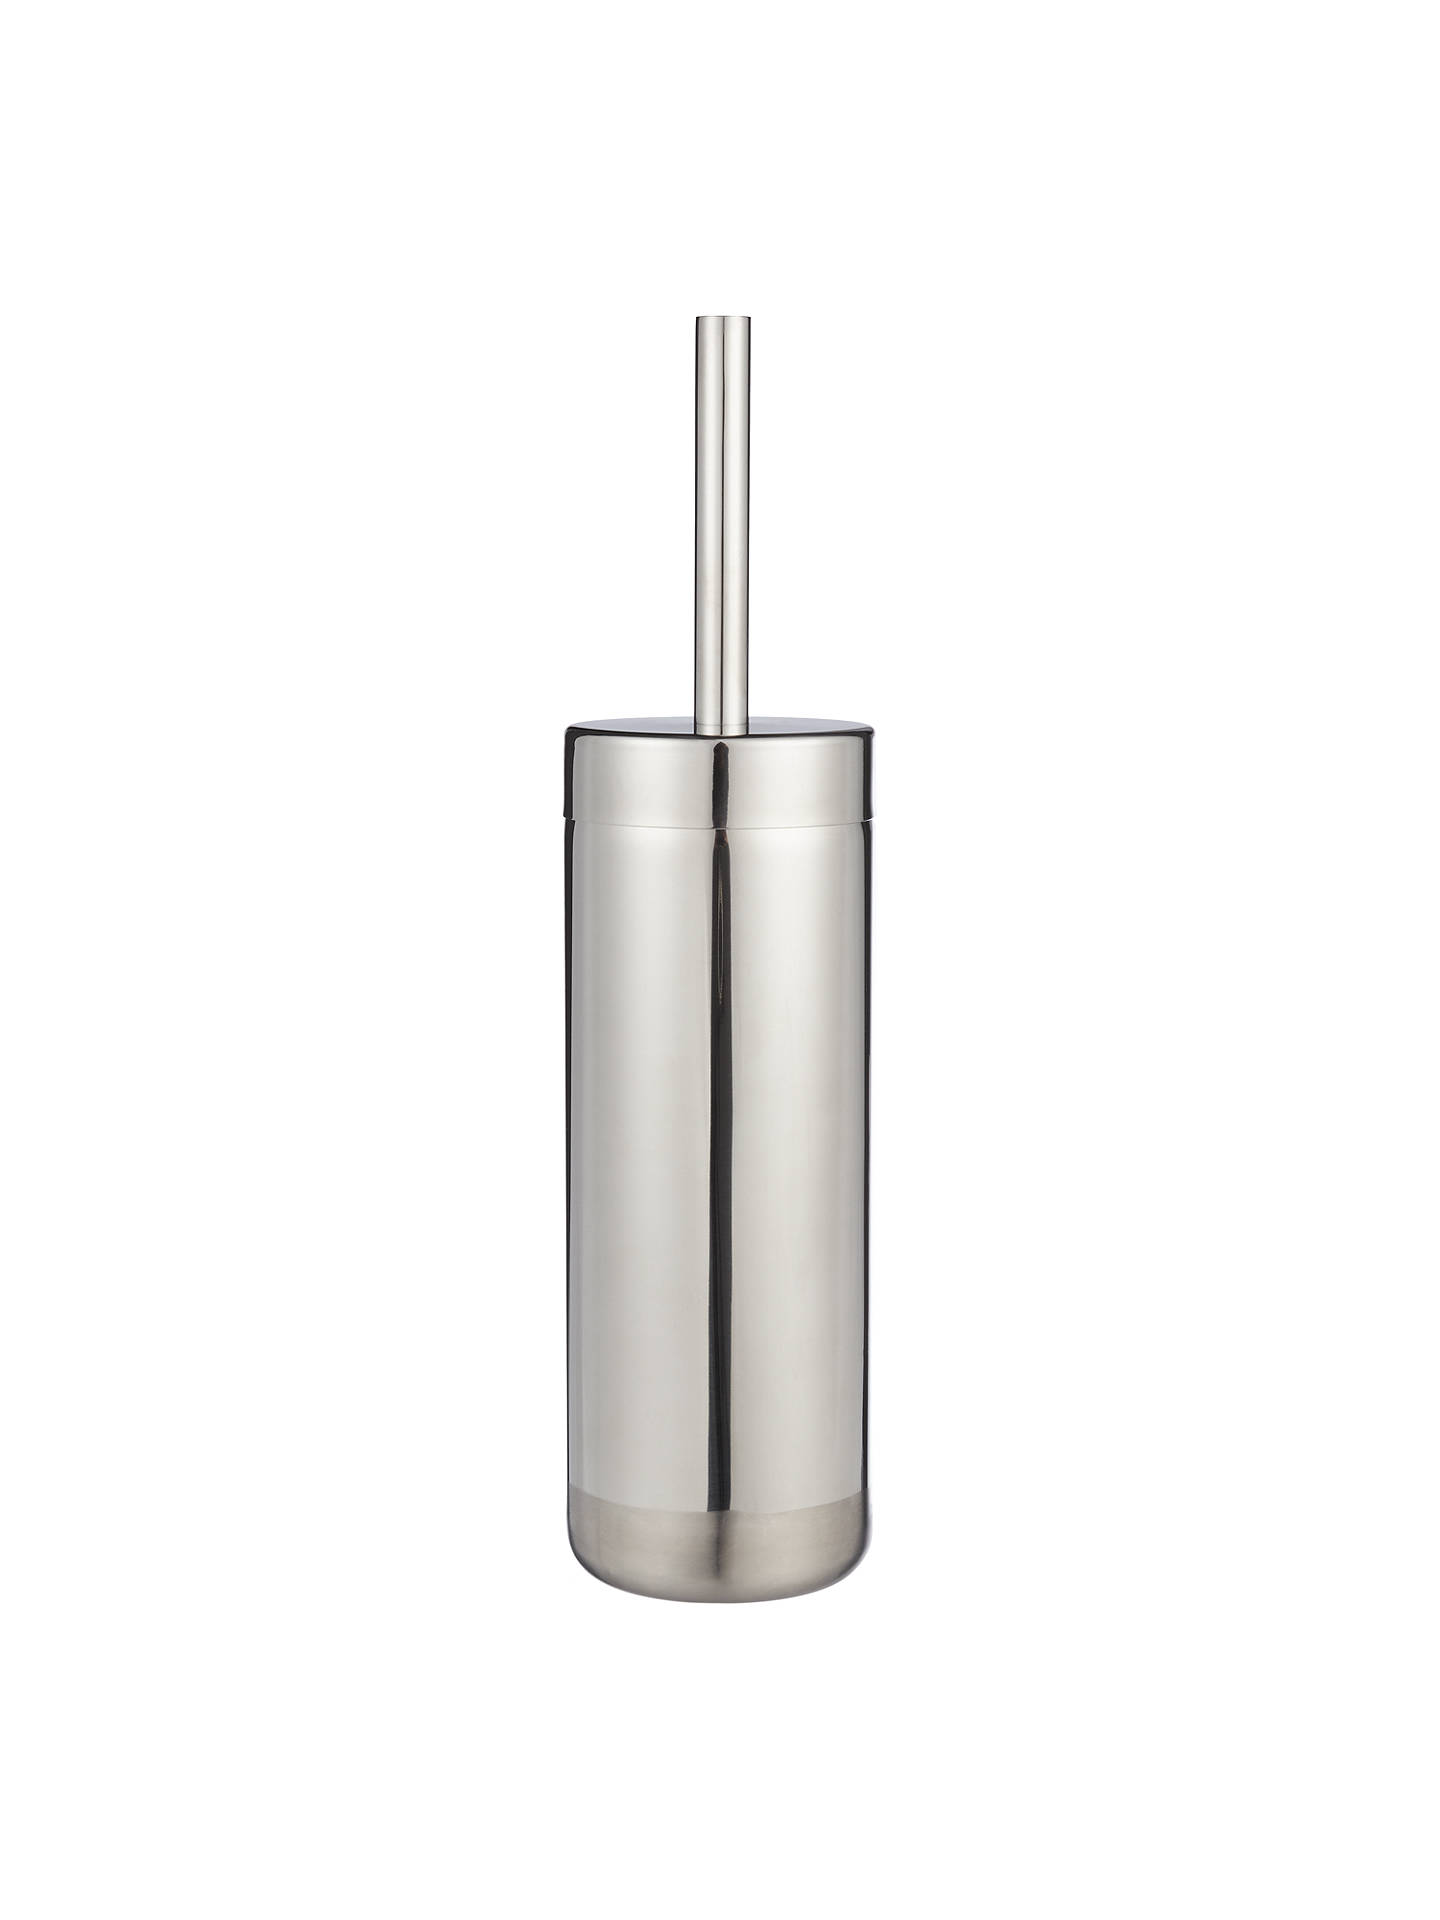 BuyJohn Lewis & Partners Design Project No.170 Stainless Steel Toilet Brush Online at johnlewis.com